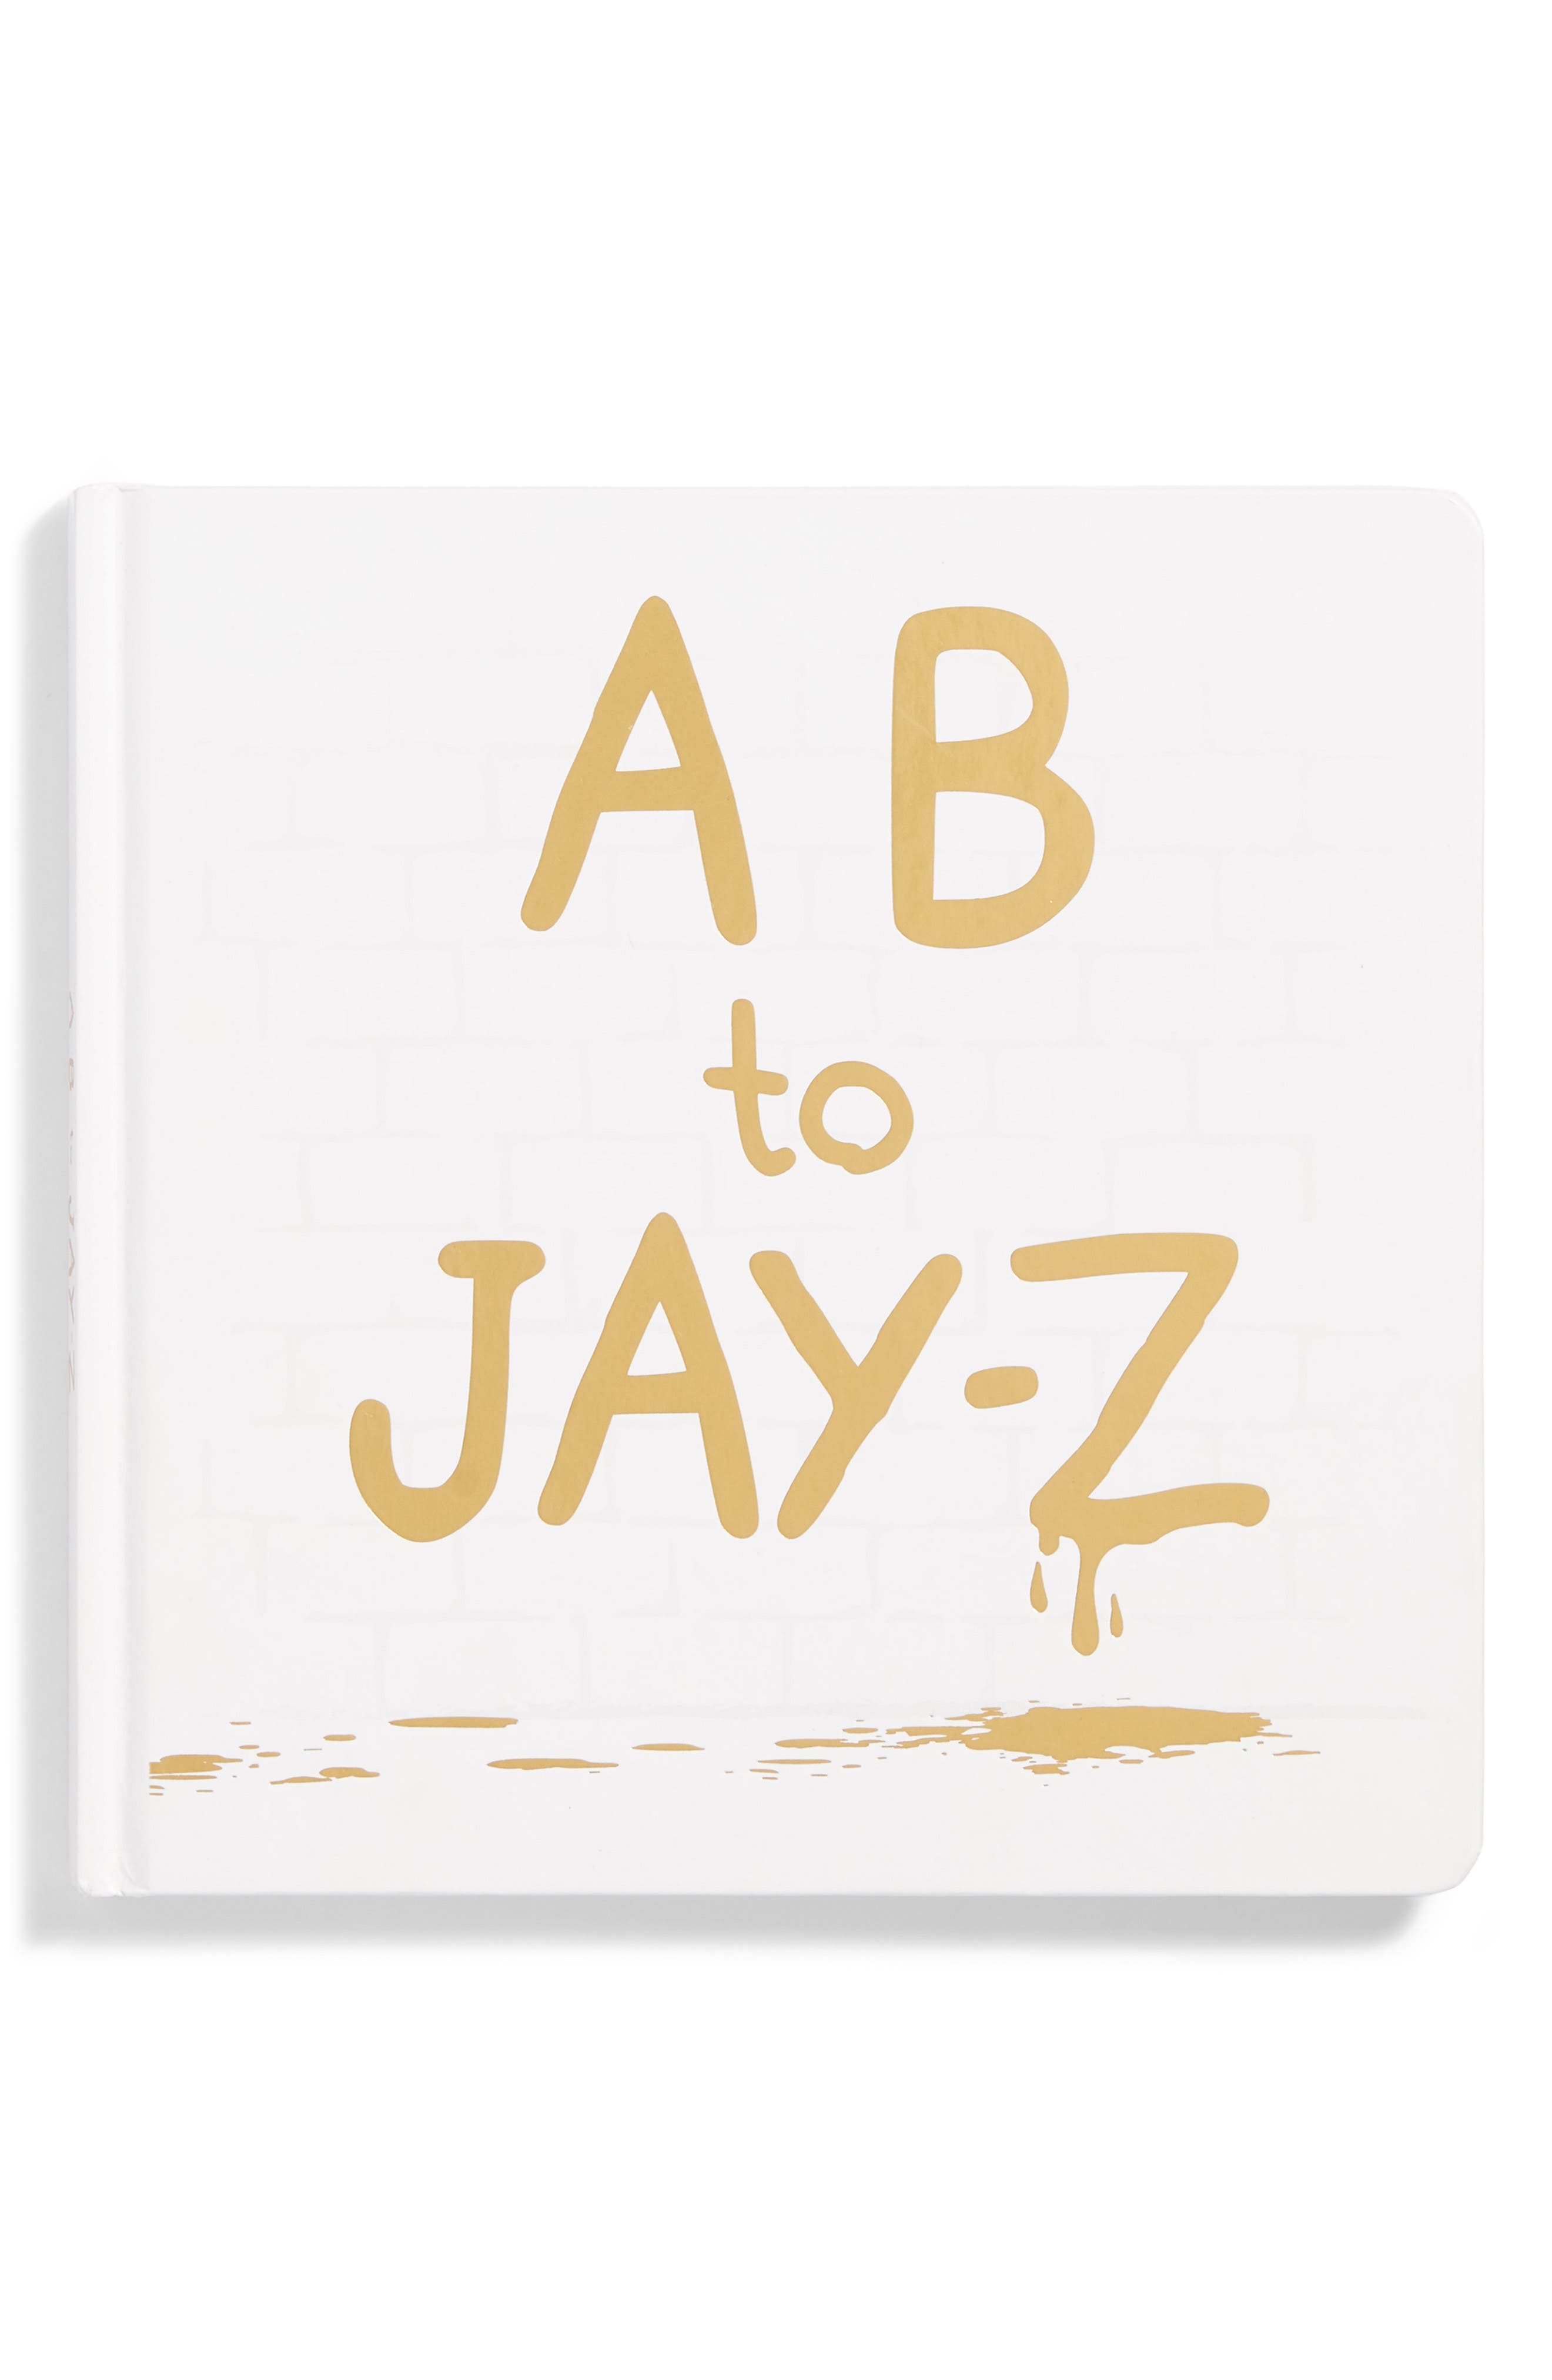 'A B to Jay-Z' Hardcover Book